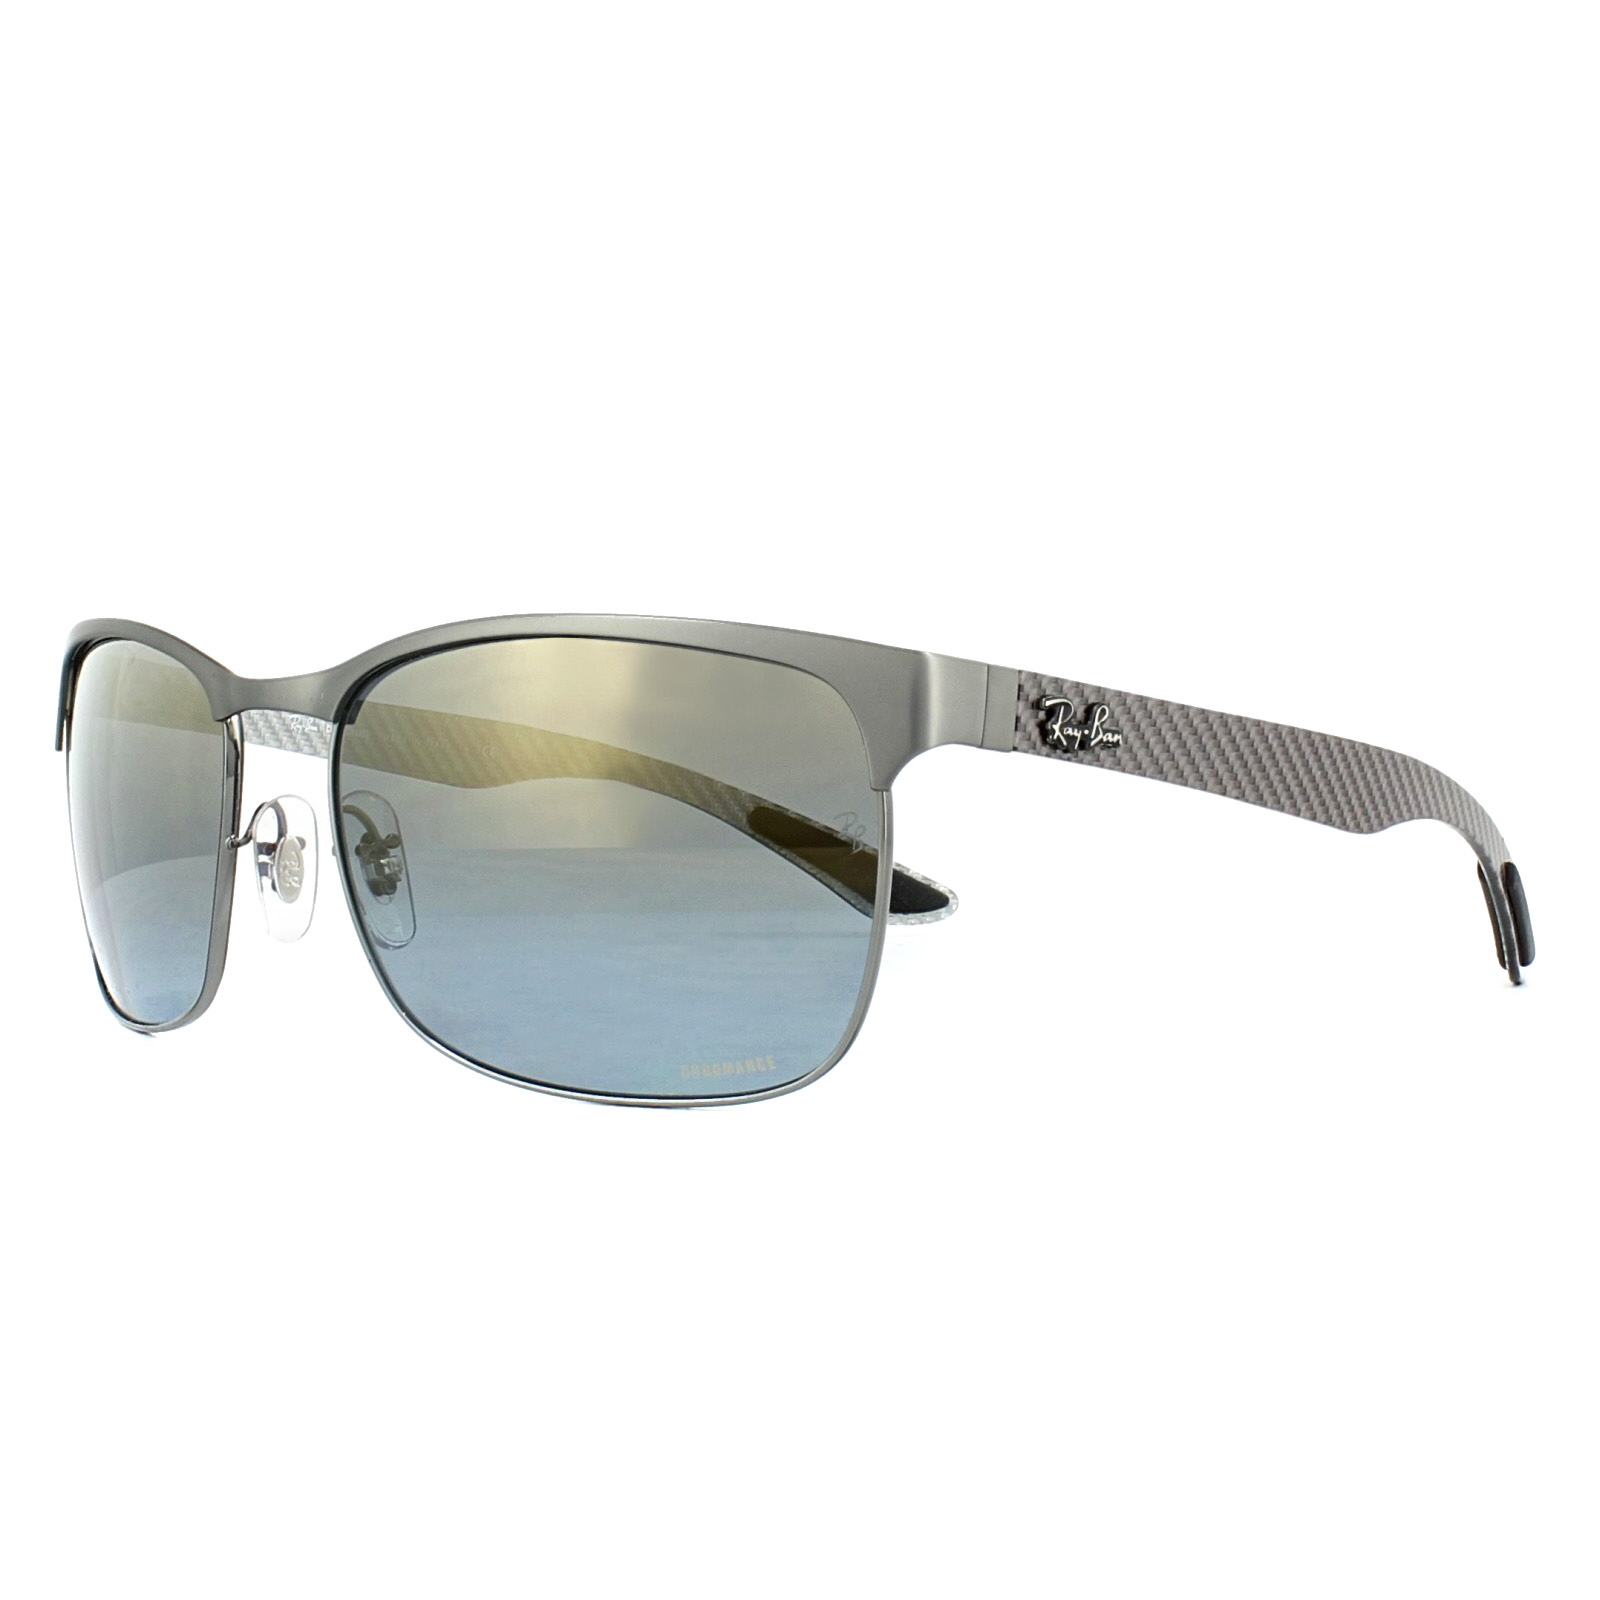 c8e711c30e Sentinel Ray-Ban Sunglasses RB8319CH 9075J0 Gunmetal Blue Mirror Polarized  Chromance